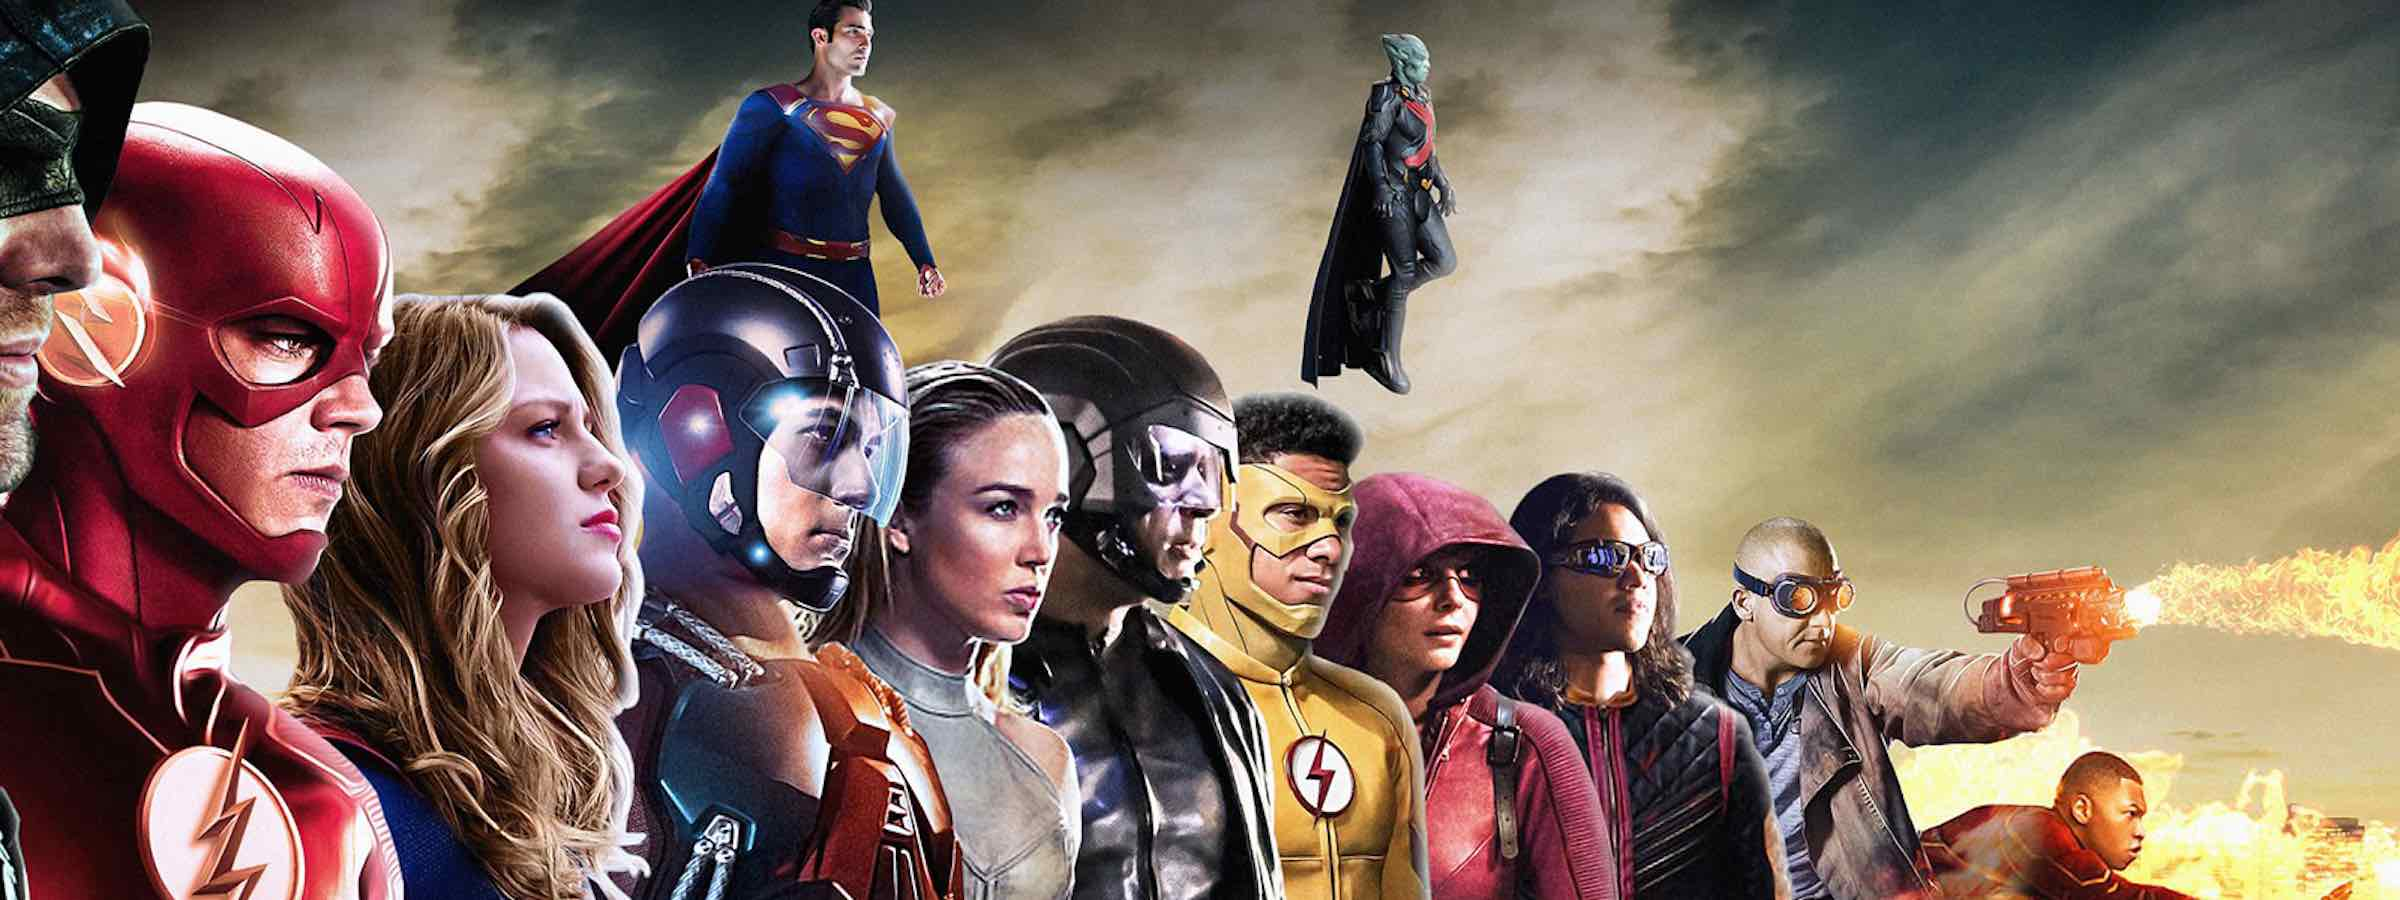 Will you hit the bullseye with our Arrowverse quiz? Travel to this DC multiverse and take on your favorite heroes' greatest foes.